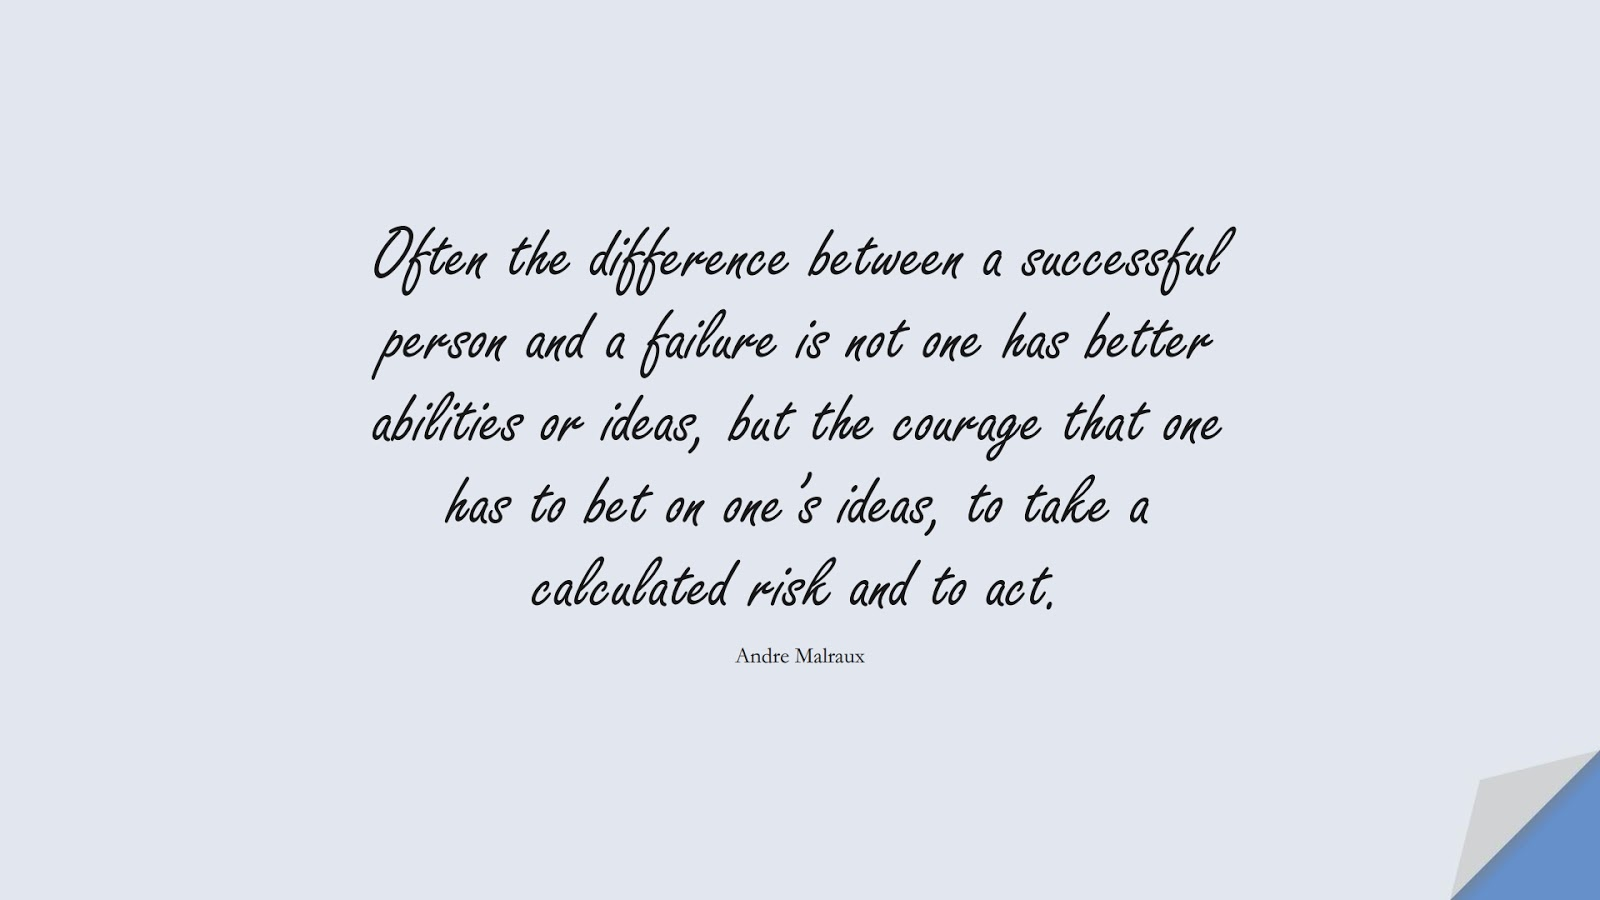 Often the difference between a successful person and a failure is not one has better abilities or ideas, but the courage that one has to bet on one's ideas, to take a calculated risk and to act. (Andre Malraux);  #SuccessQuotes